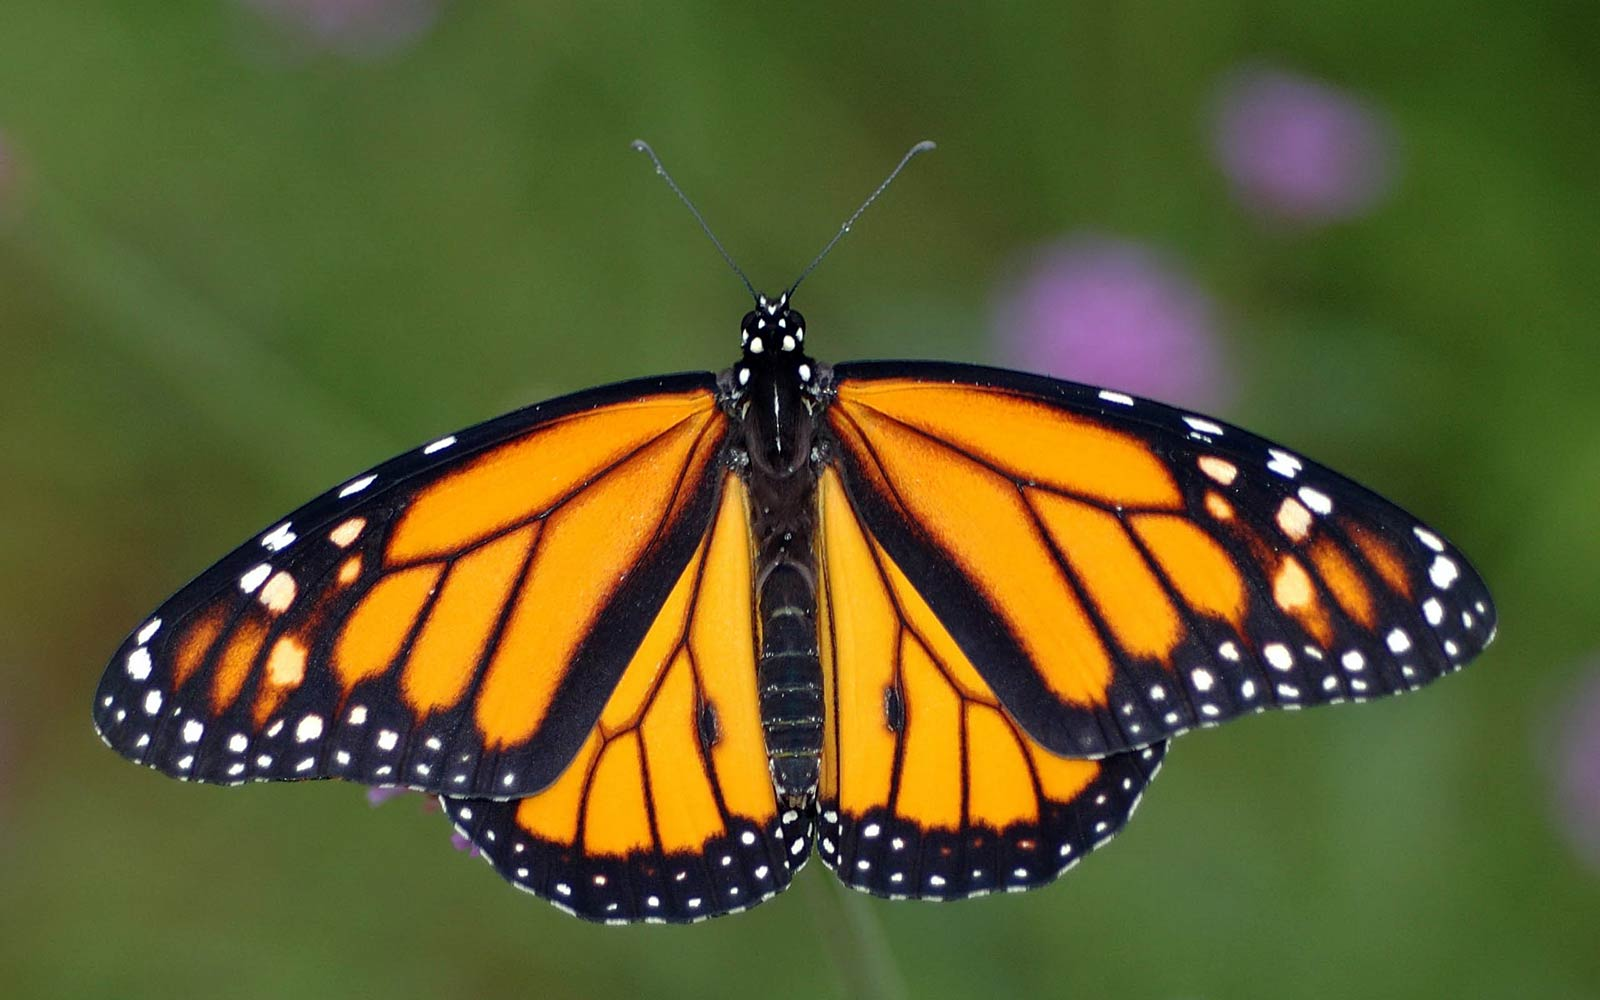 Protect Monarch Butterflies from radiation | EMF Safety ... - photo#50